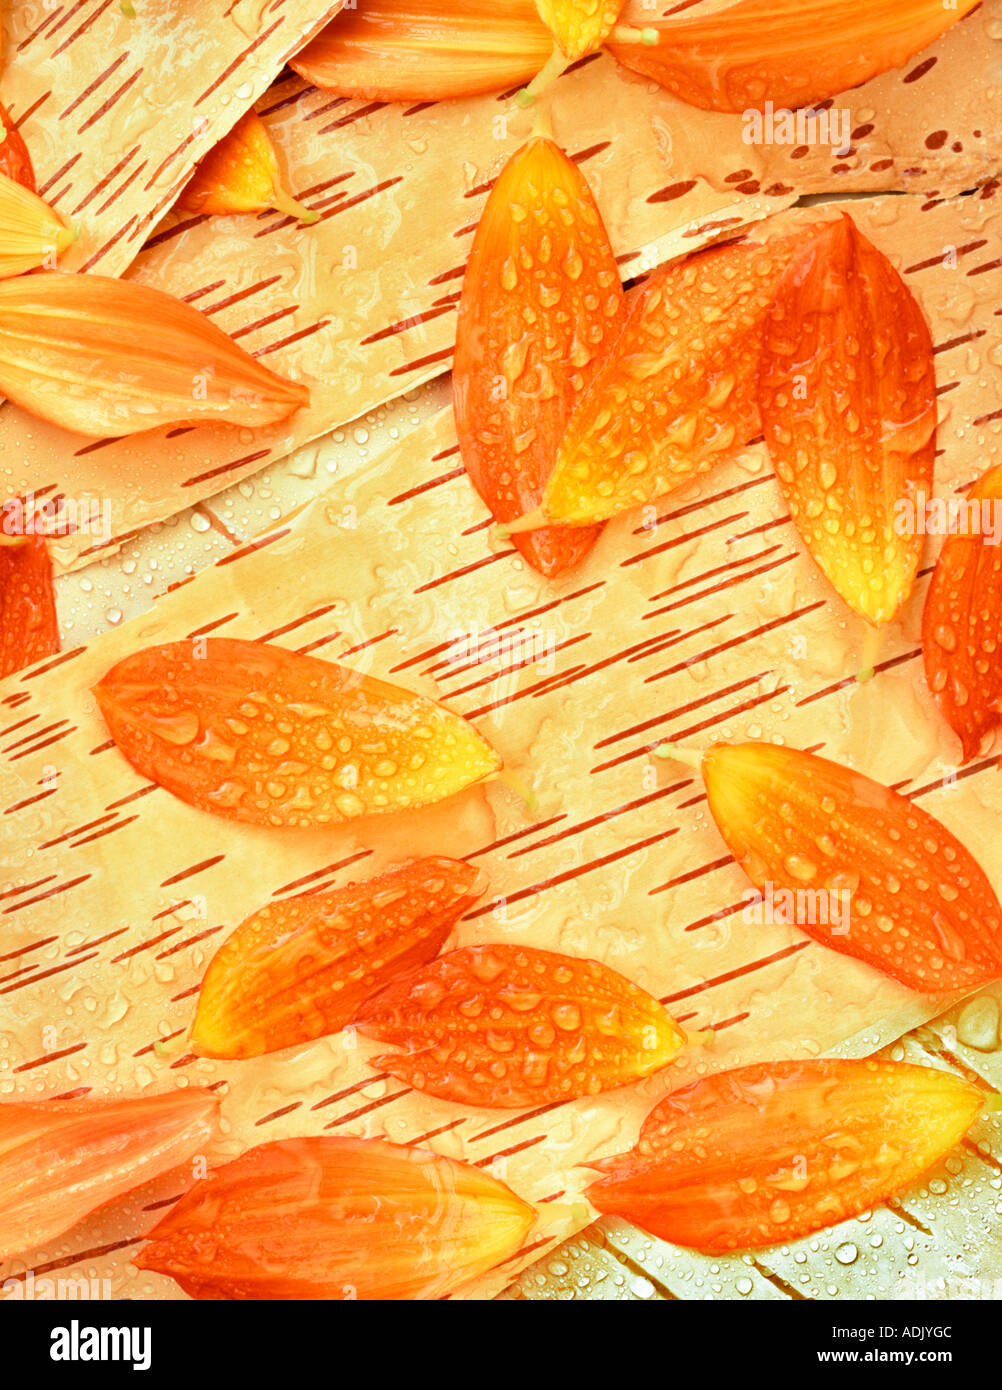 Dahlia flower petals with rain drops on bark of white birch tree Oregon - Stock Image